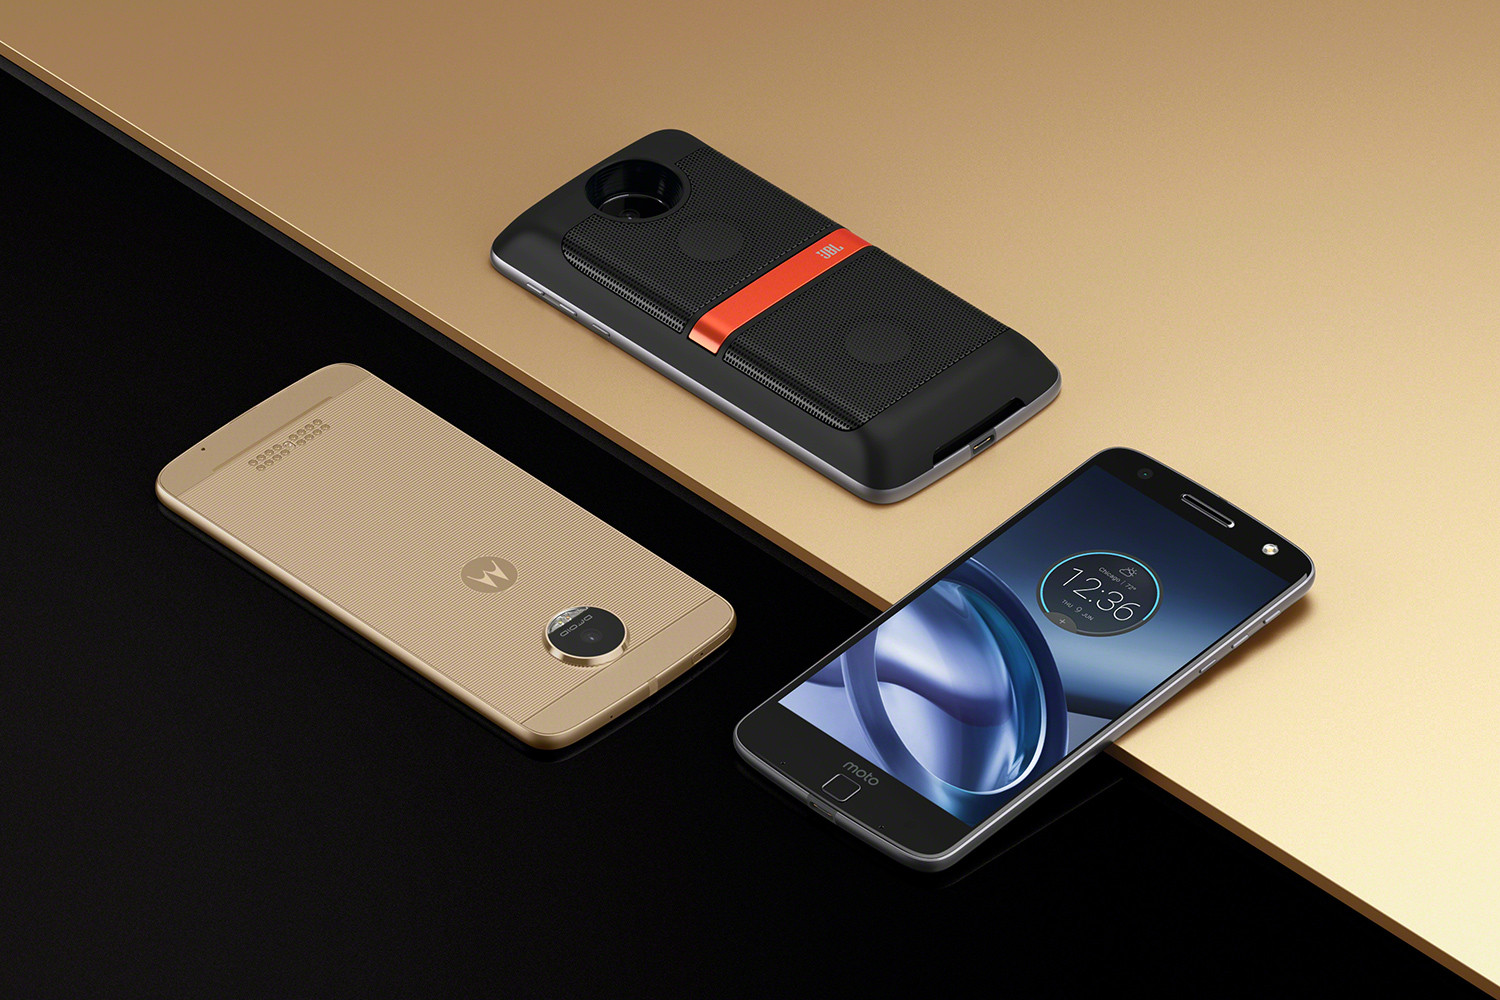 Phone Top Motorola Android Phones the lenovo moto z will soon be daydream ready digital trends motorola news droid edition lifestyle